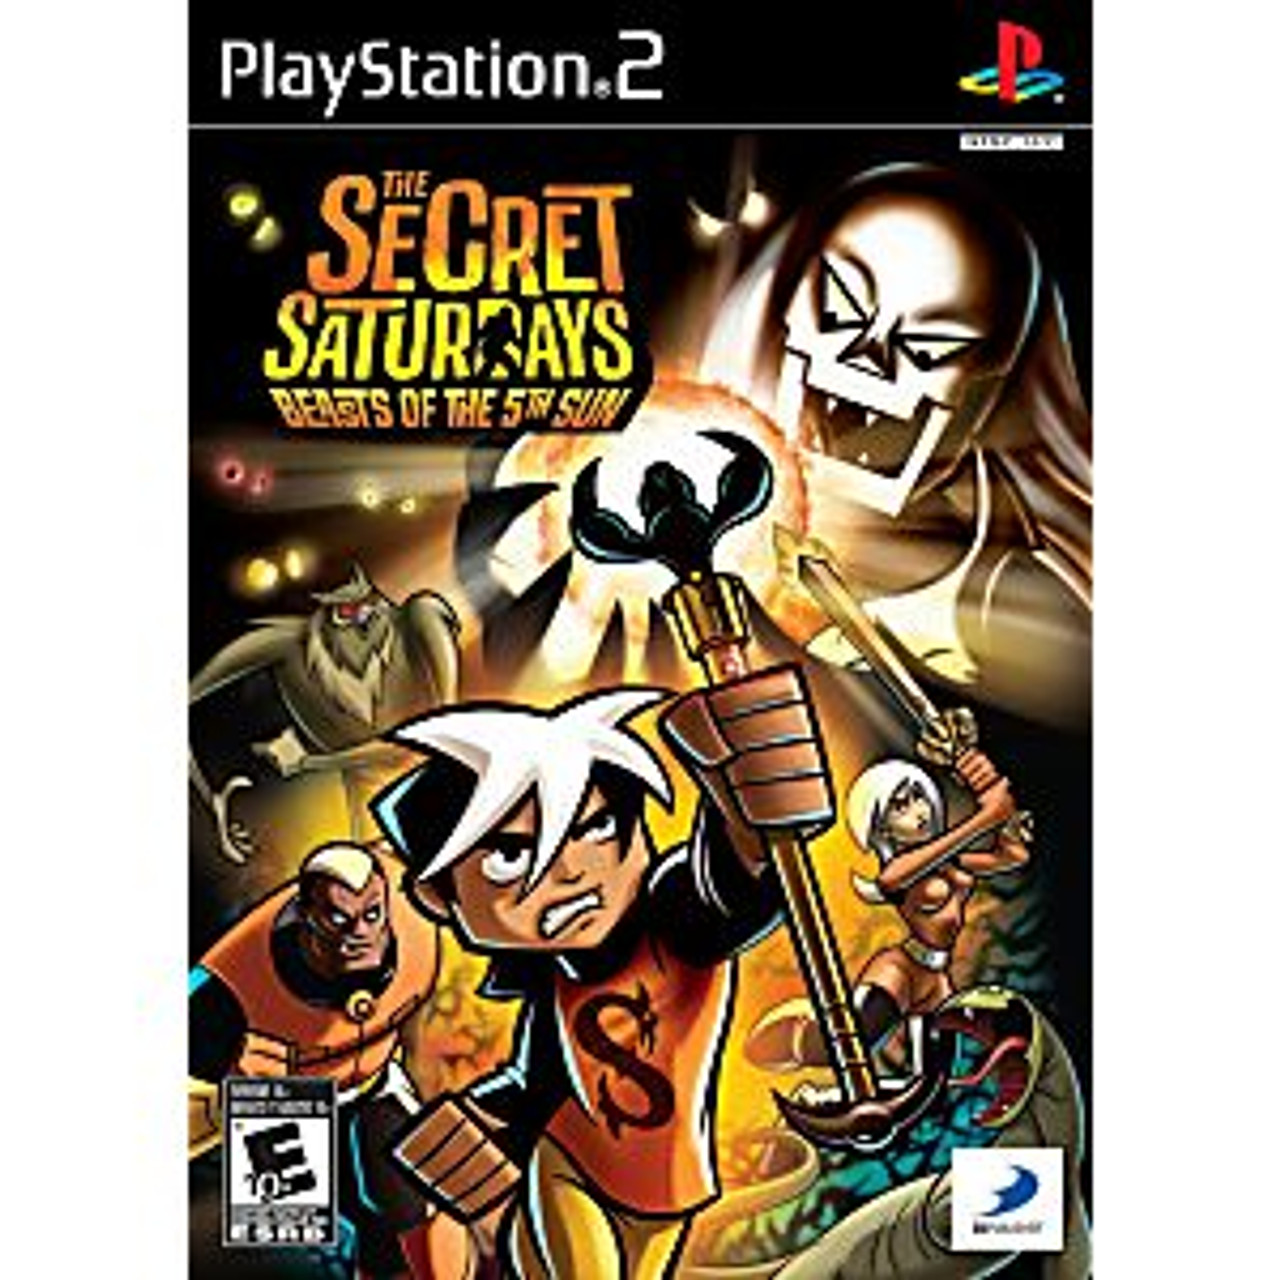 THE SECRET SATURDAYS: BEASTS OF THE 5TH SUN - PS2